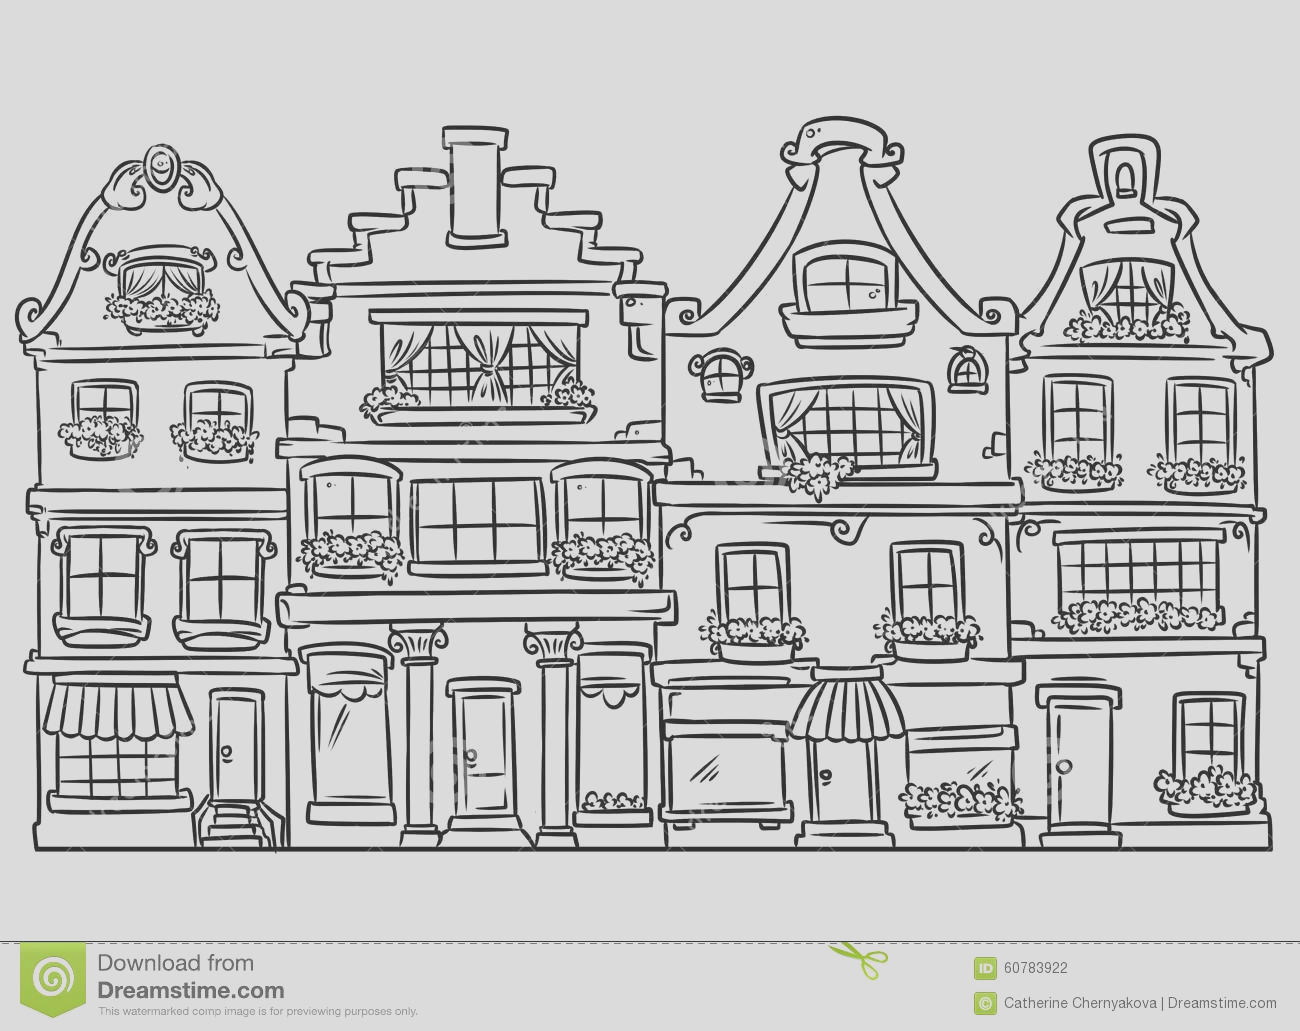 stock illustration home architecture coloring page doodle contour illustration isolated image image